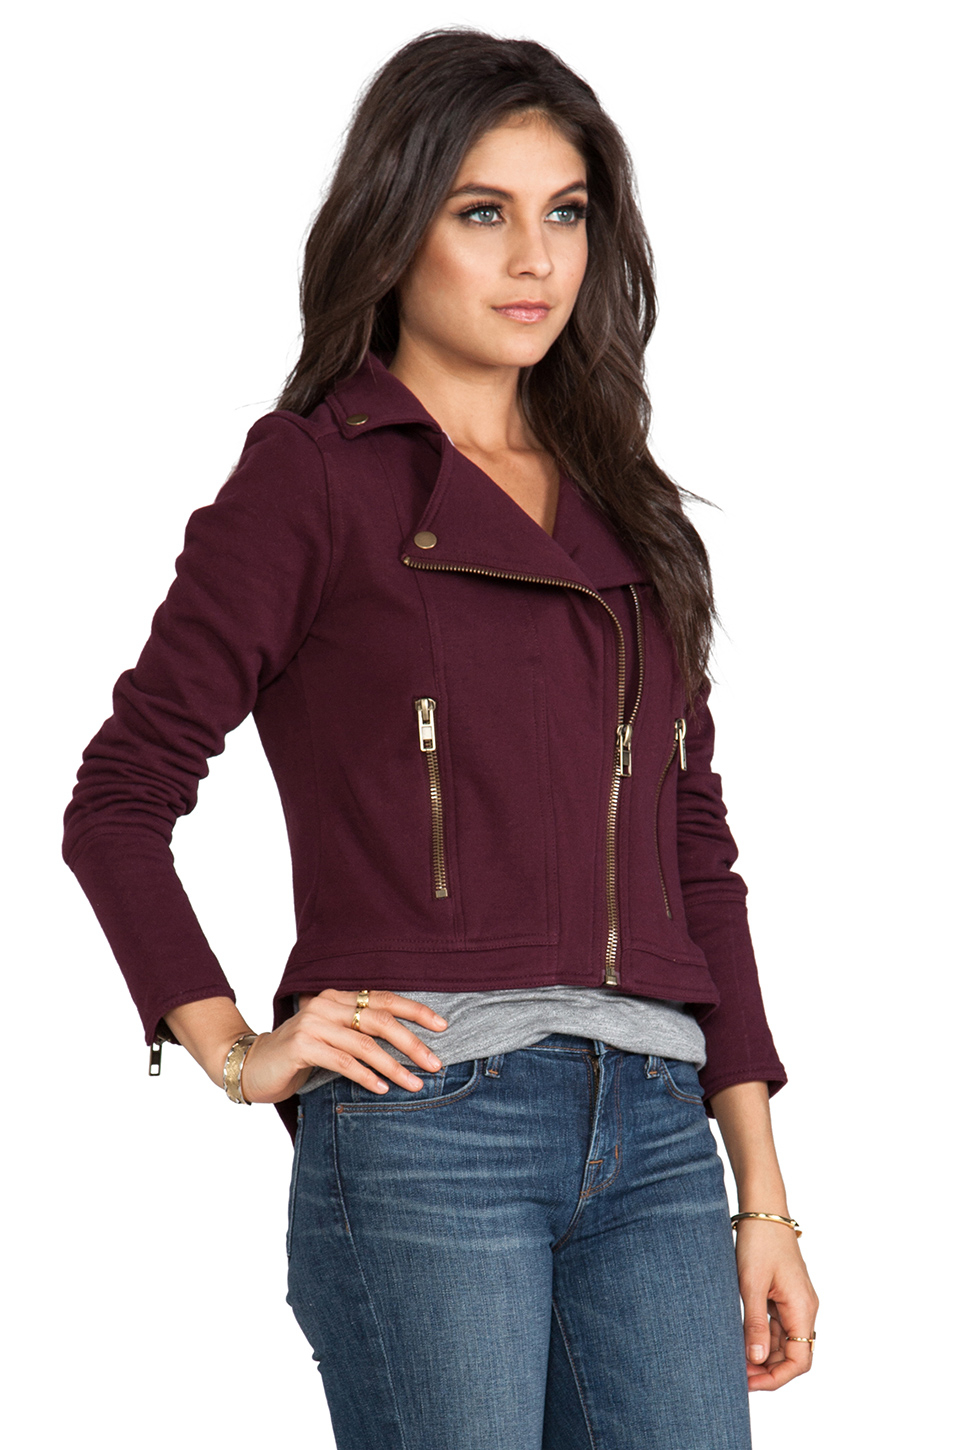 Lyst Chaser Fleece Moto Jacket In Burgundy In Red